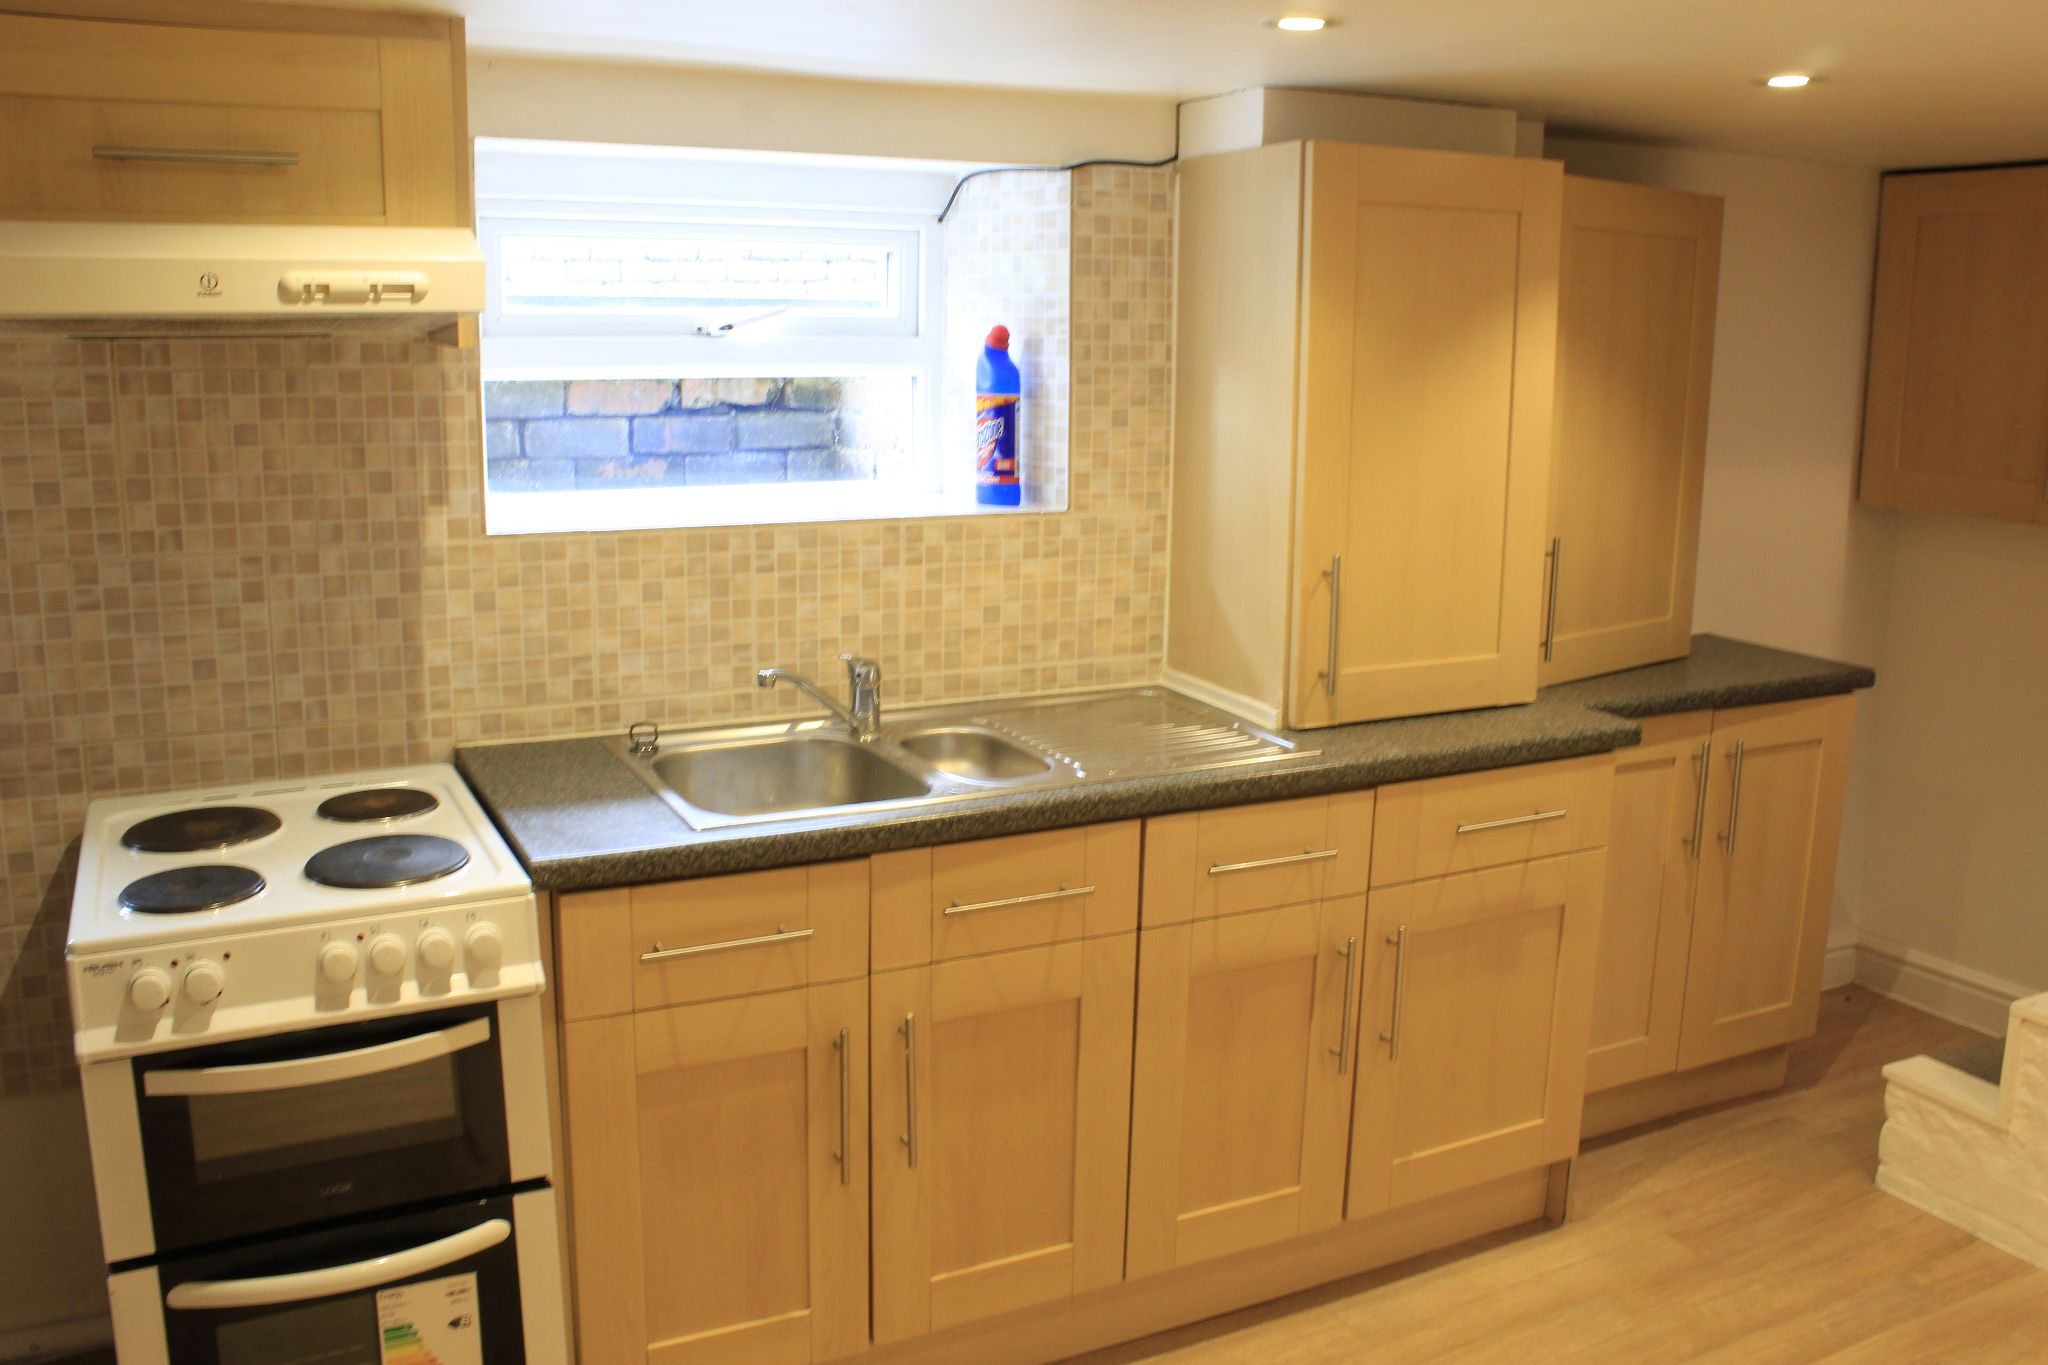 1 bedroom maisonette flat/apartment To Let in Huddersfield - Kitchen area